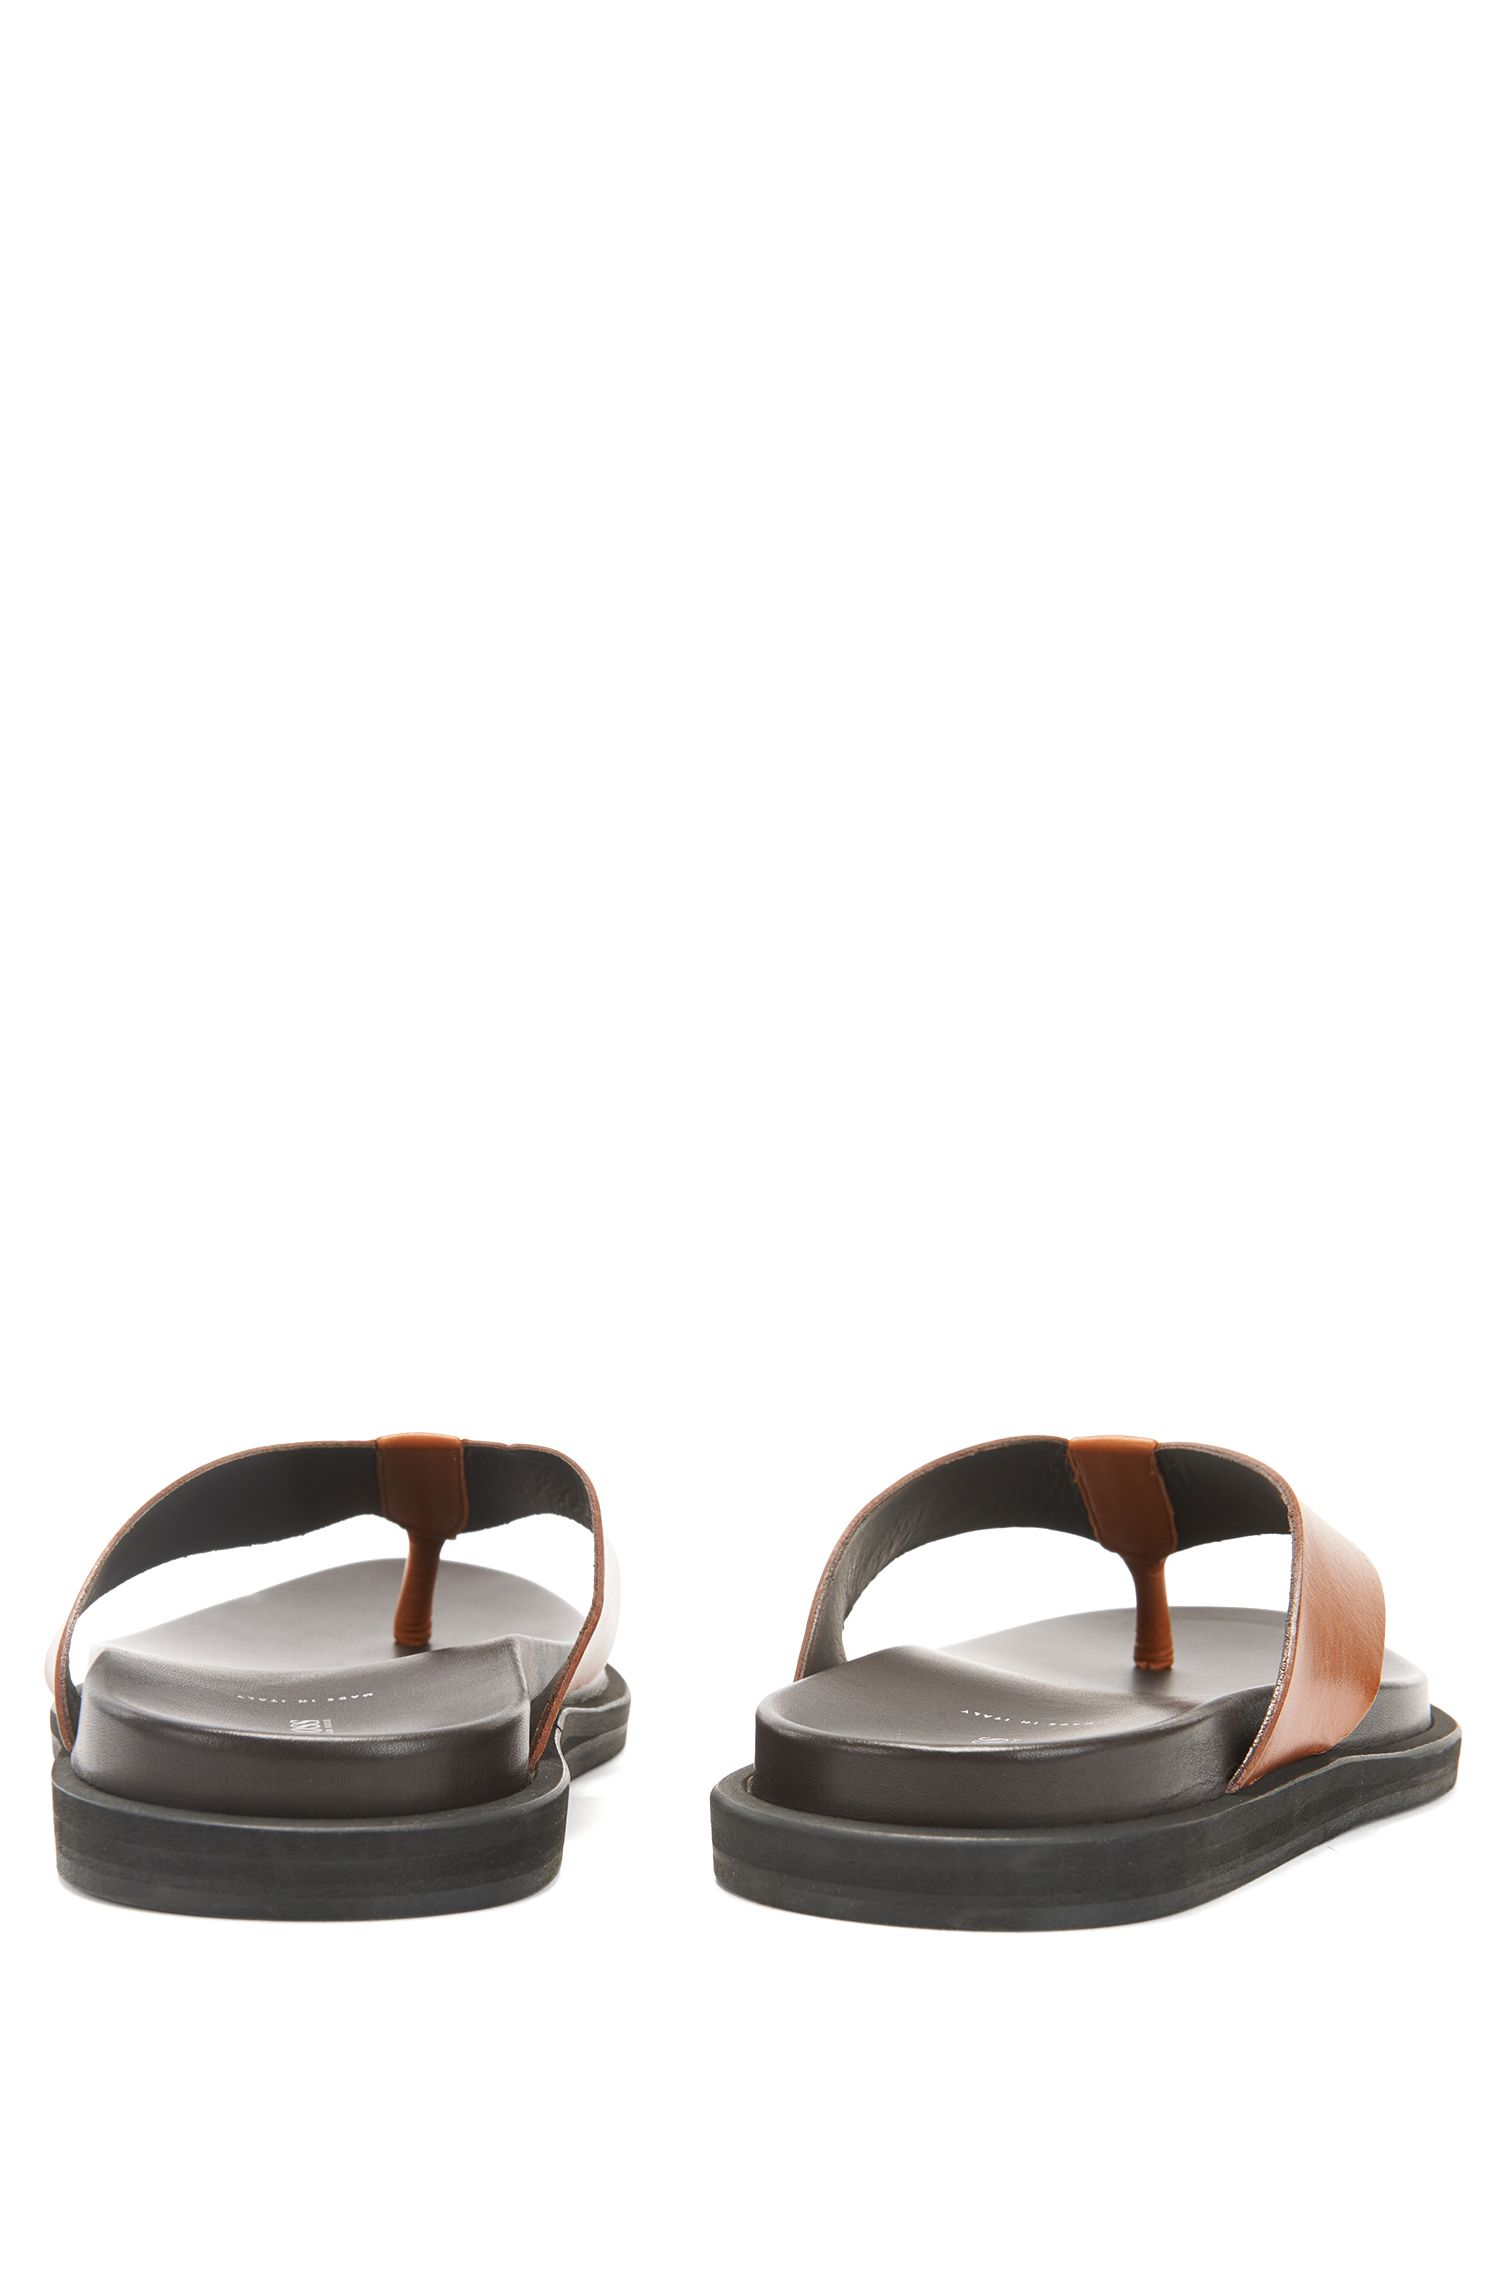 Italian-made calf-leather thong sandals